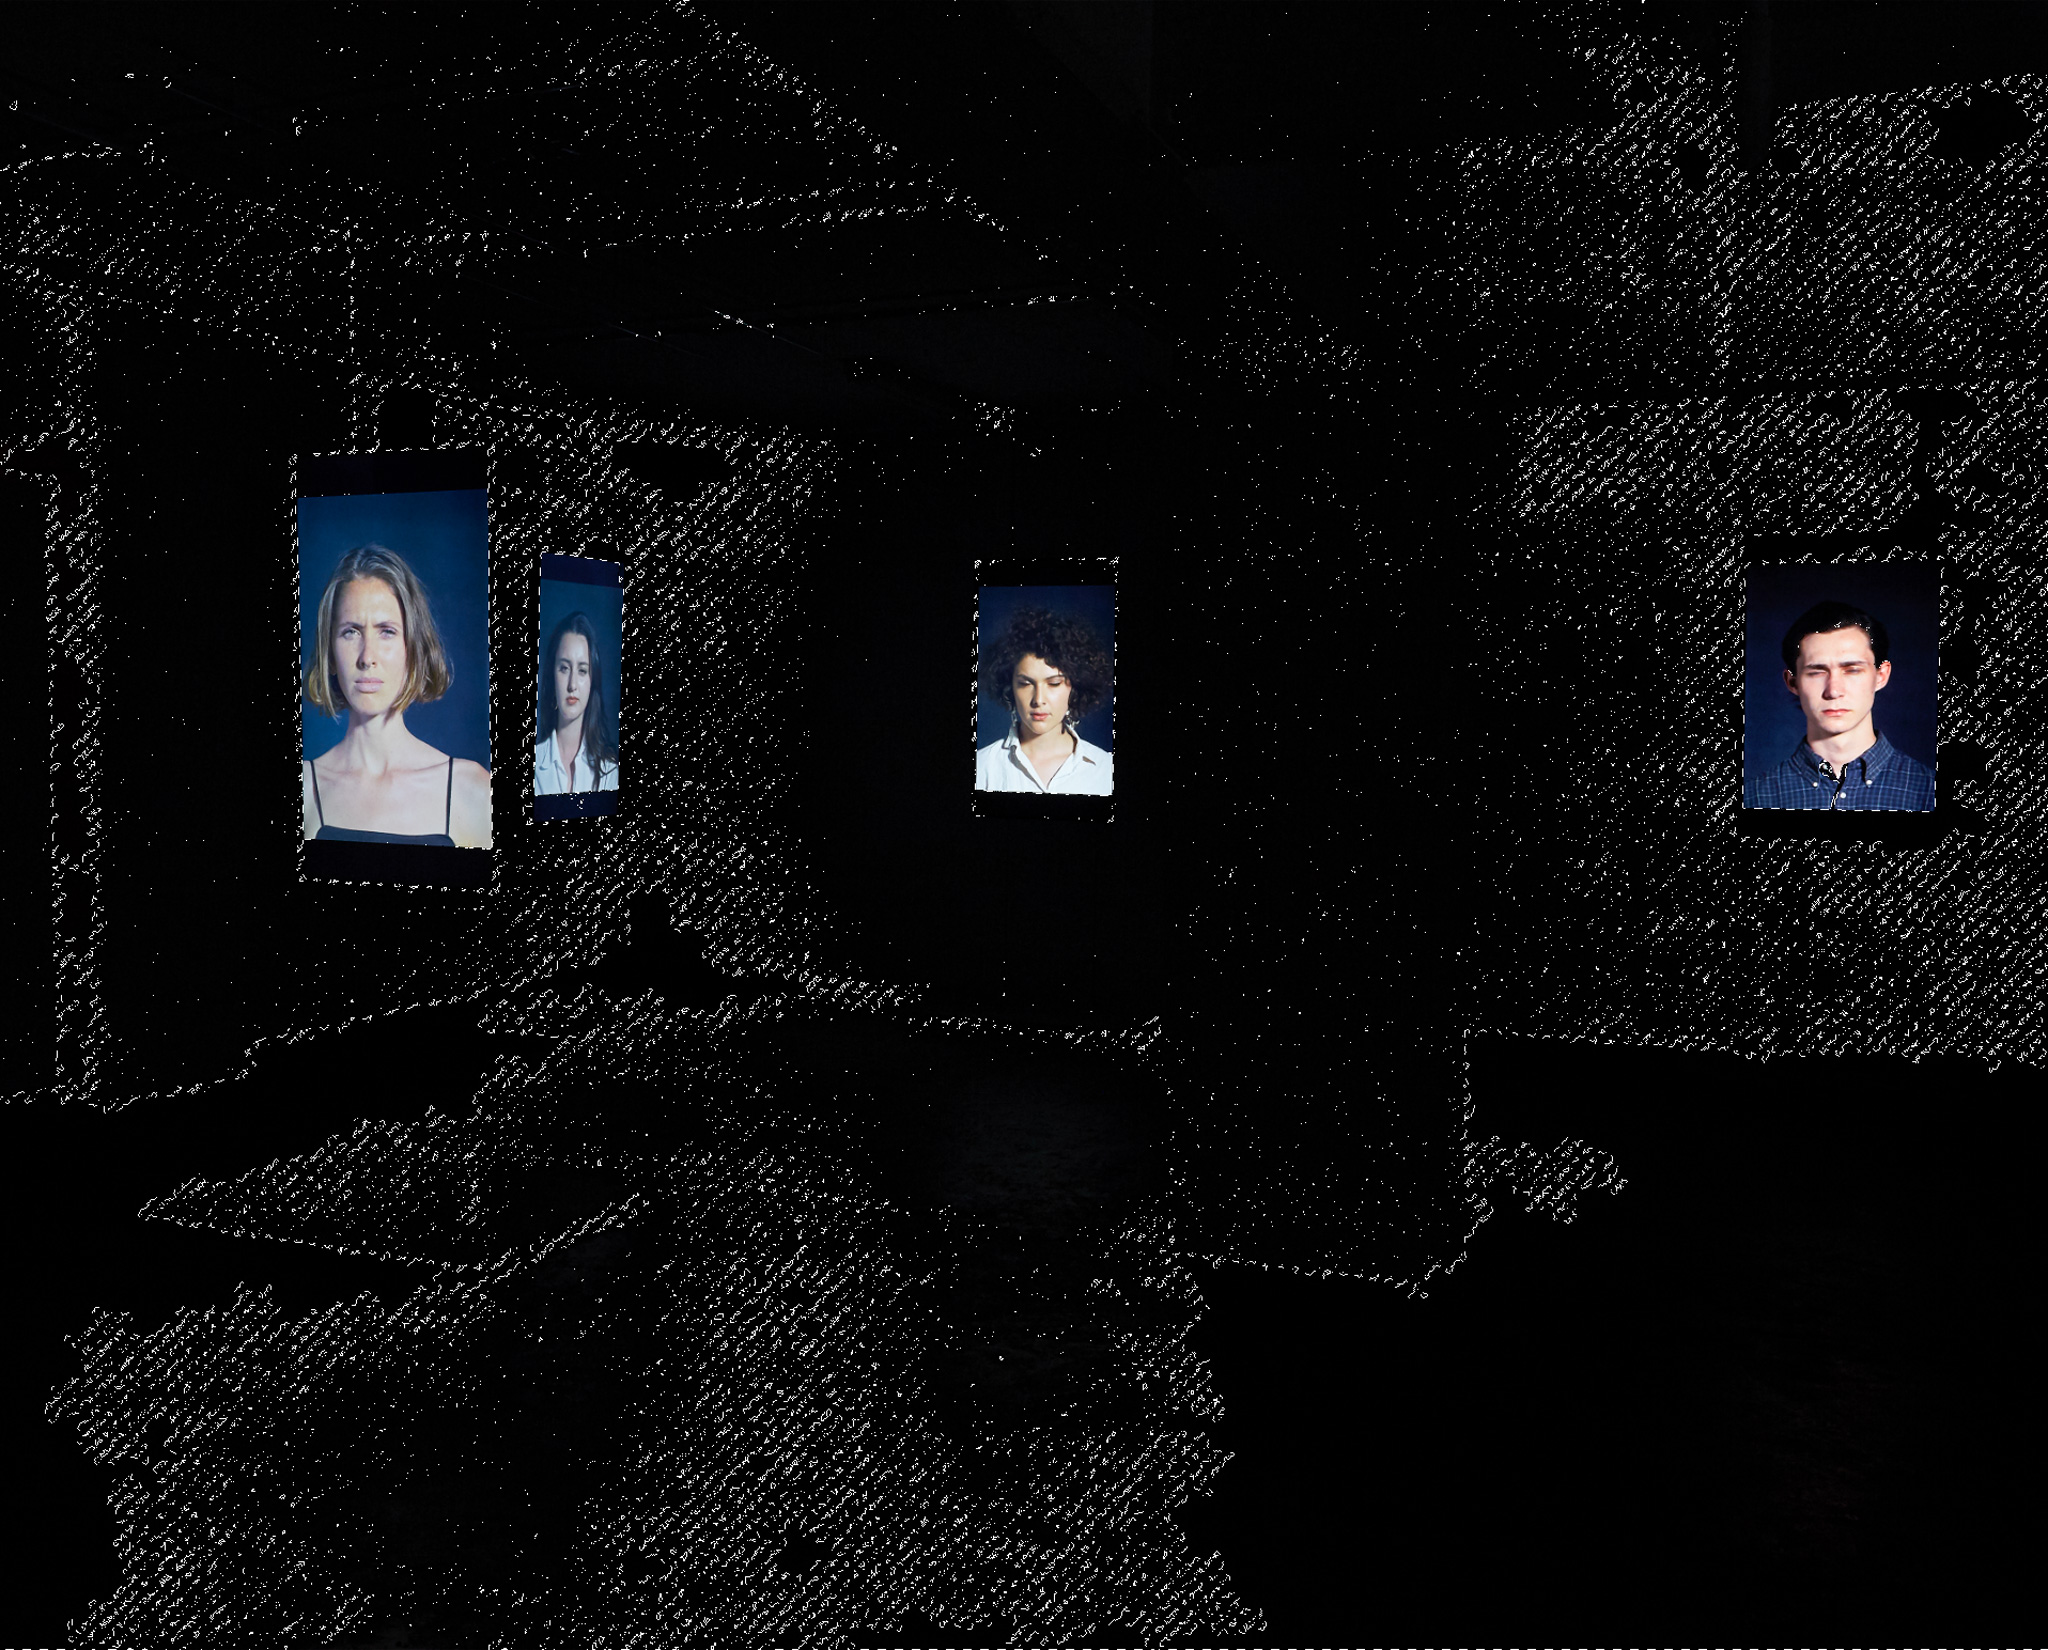 <p><i>Flash Portraits</i>, 2018, Exhibition mapping</p>